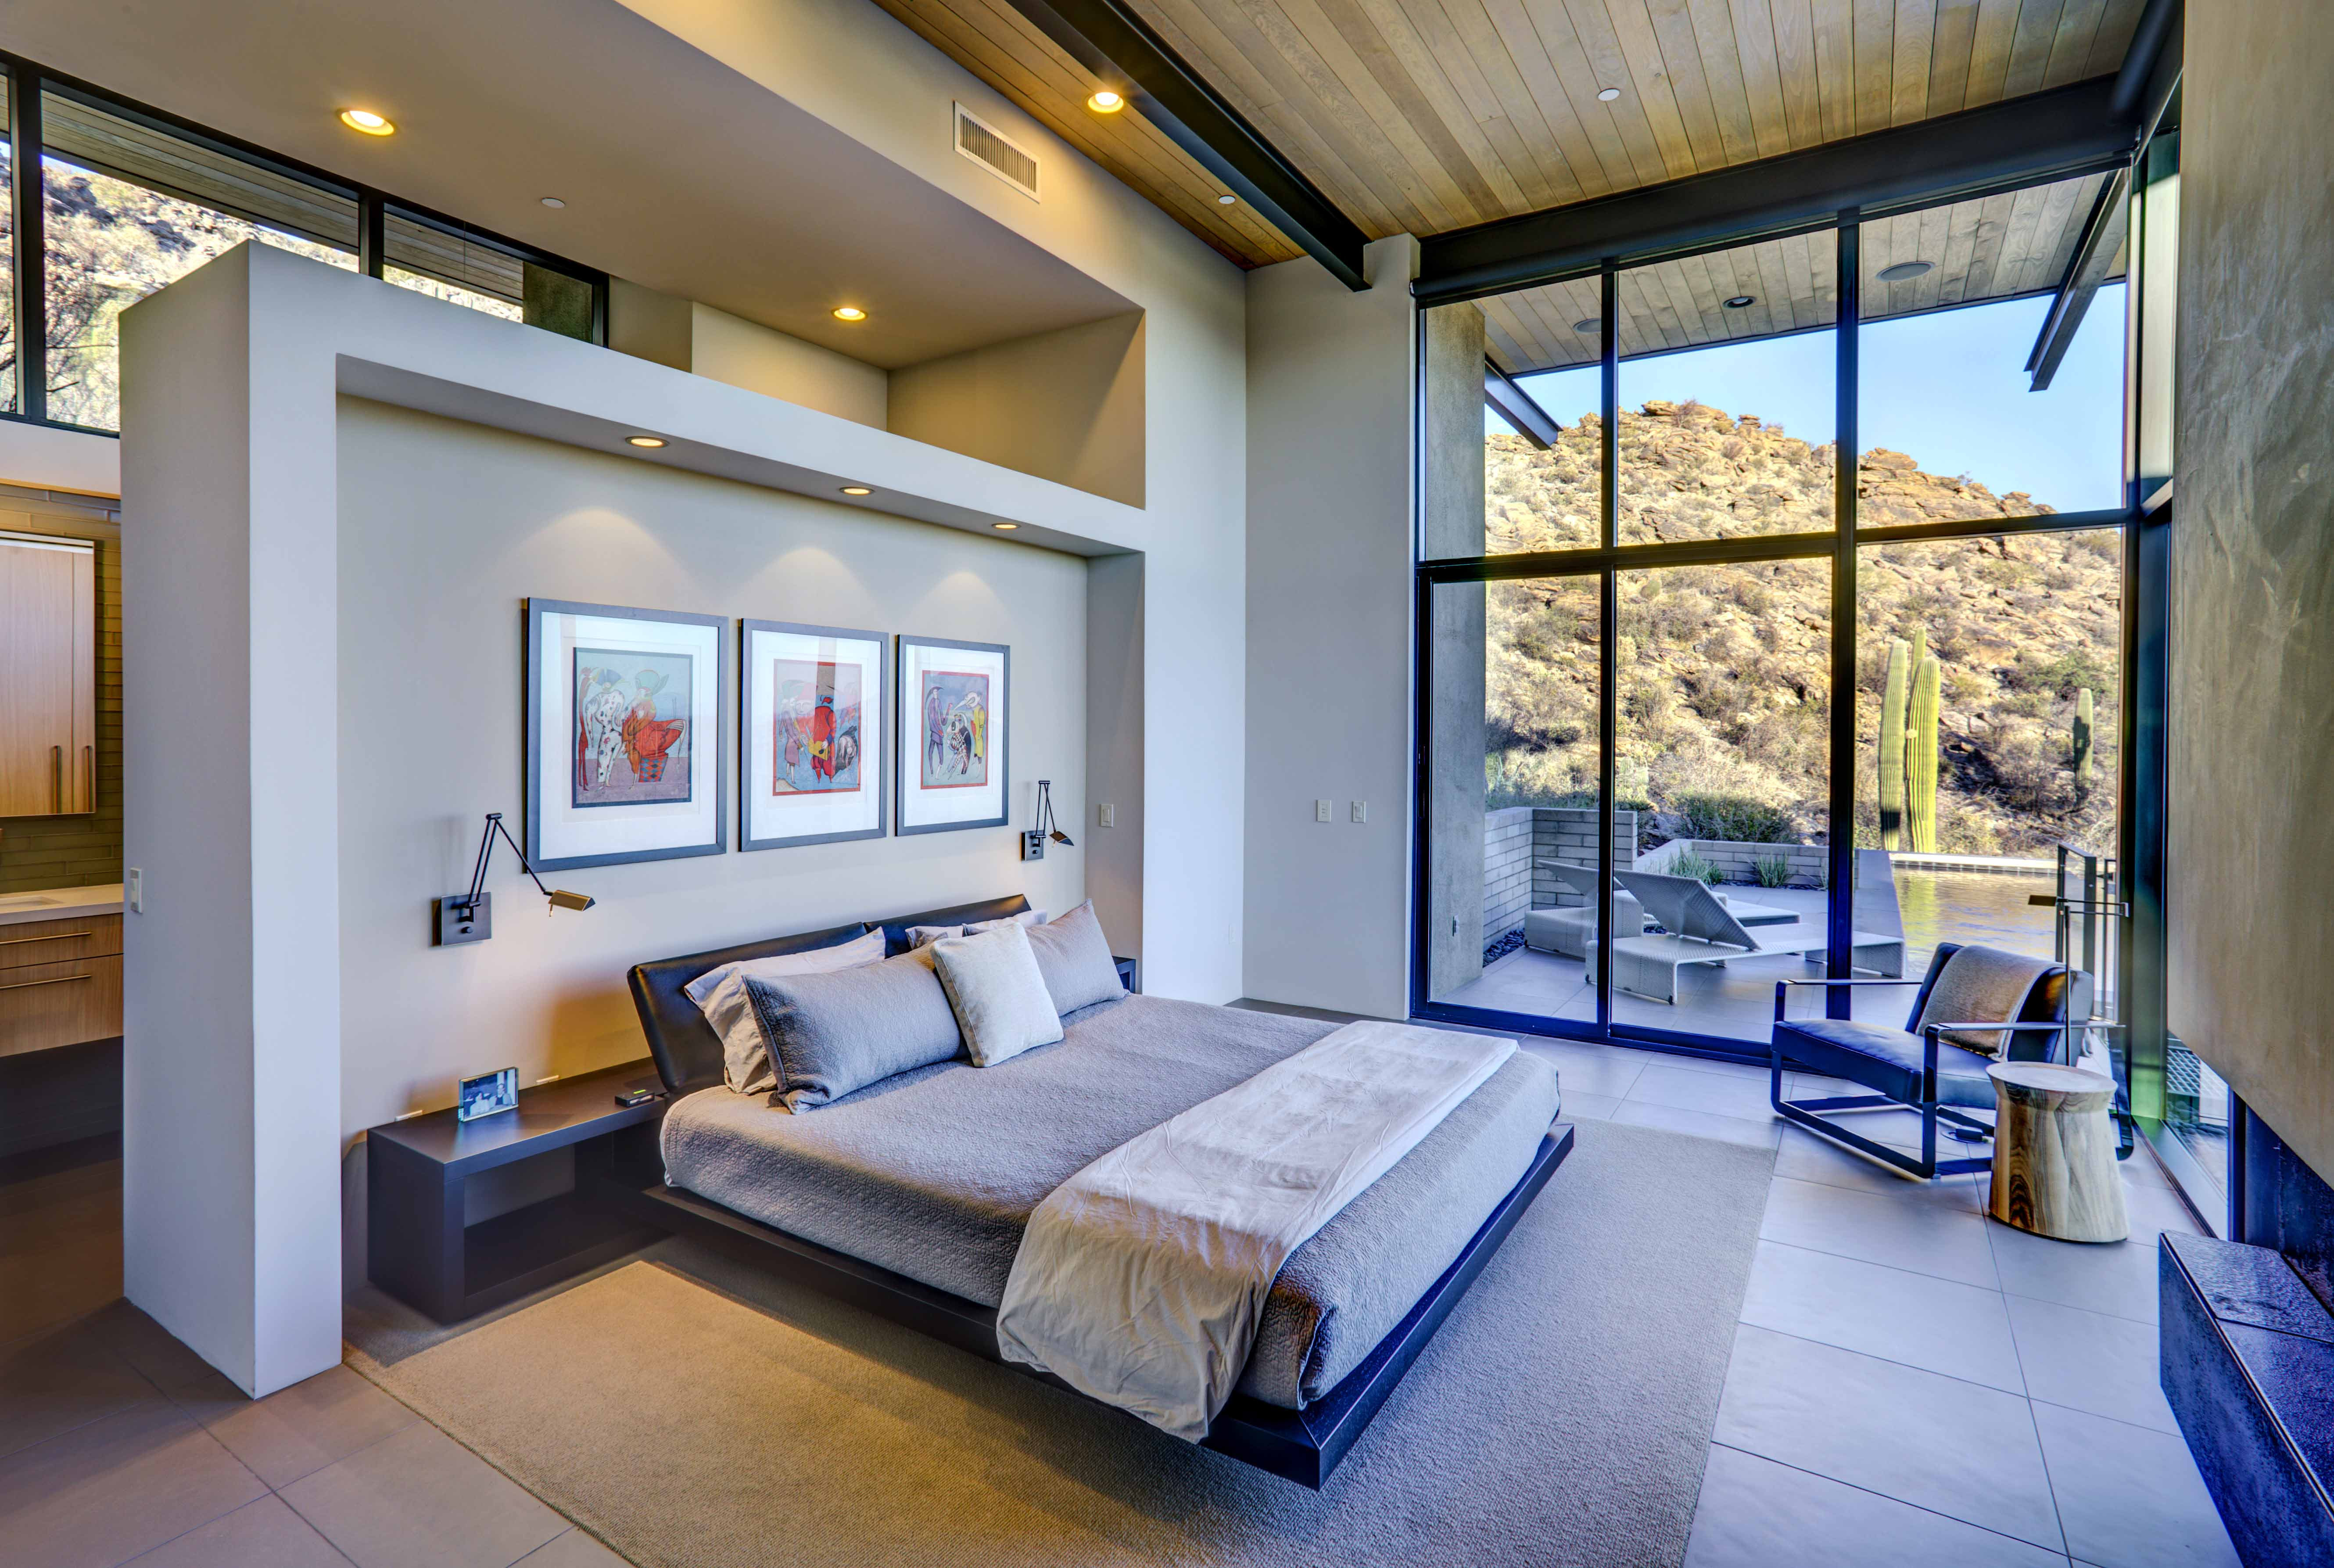 Open bedroom with modern lighting